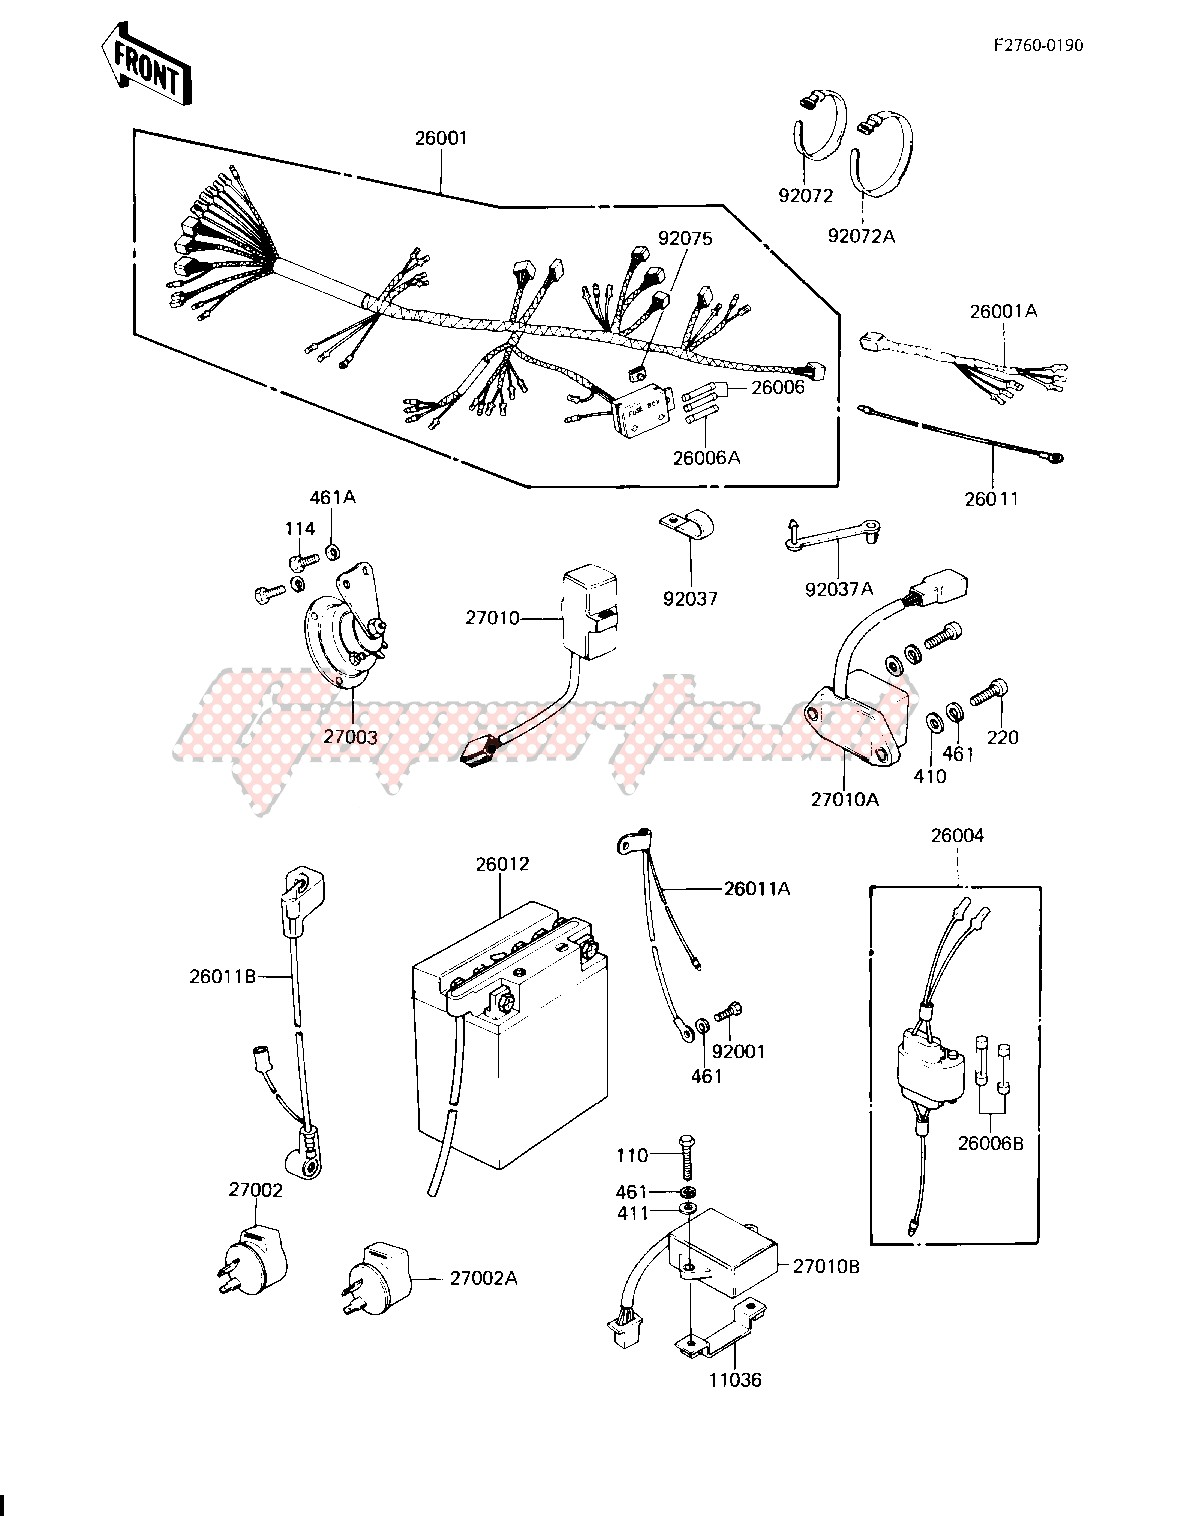 kz750 80 wiring diagram oem chassis electrical equipment kz750 h4  kawasaki  oem chassis electrical equipment